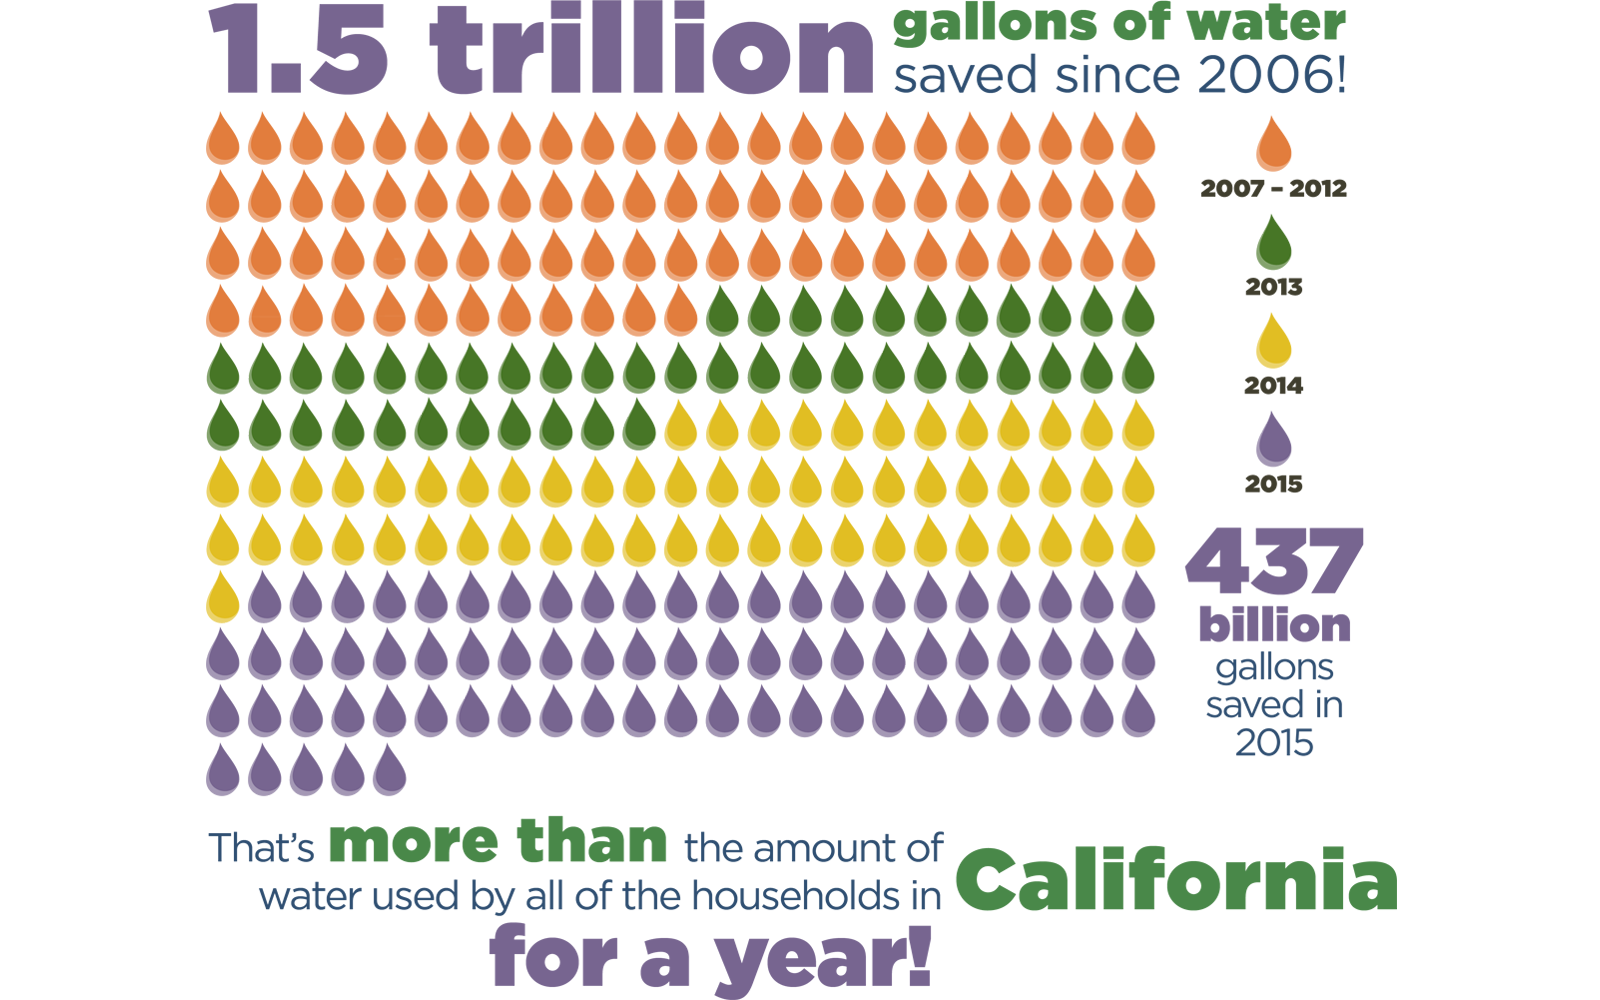 1.5 trillion gallons of water saved since 2006!